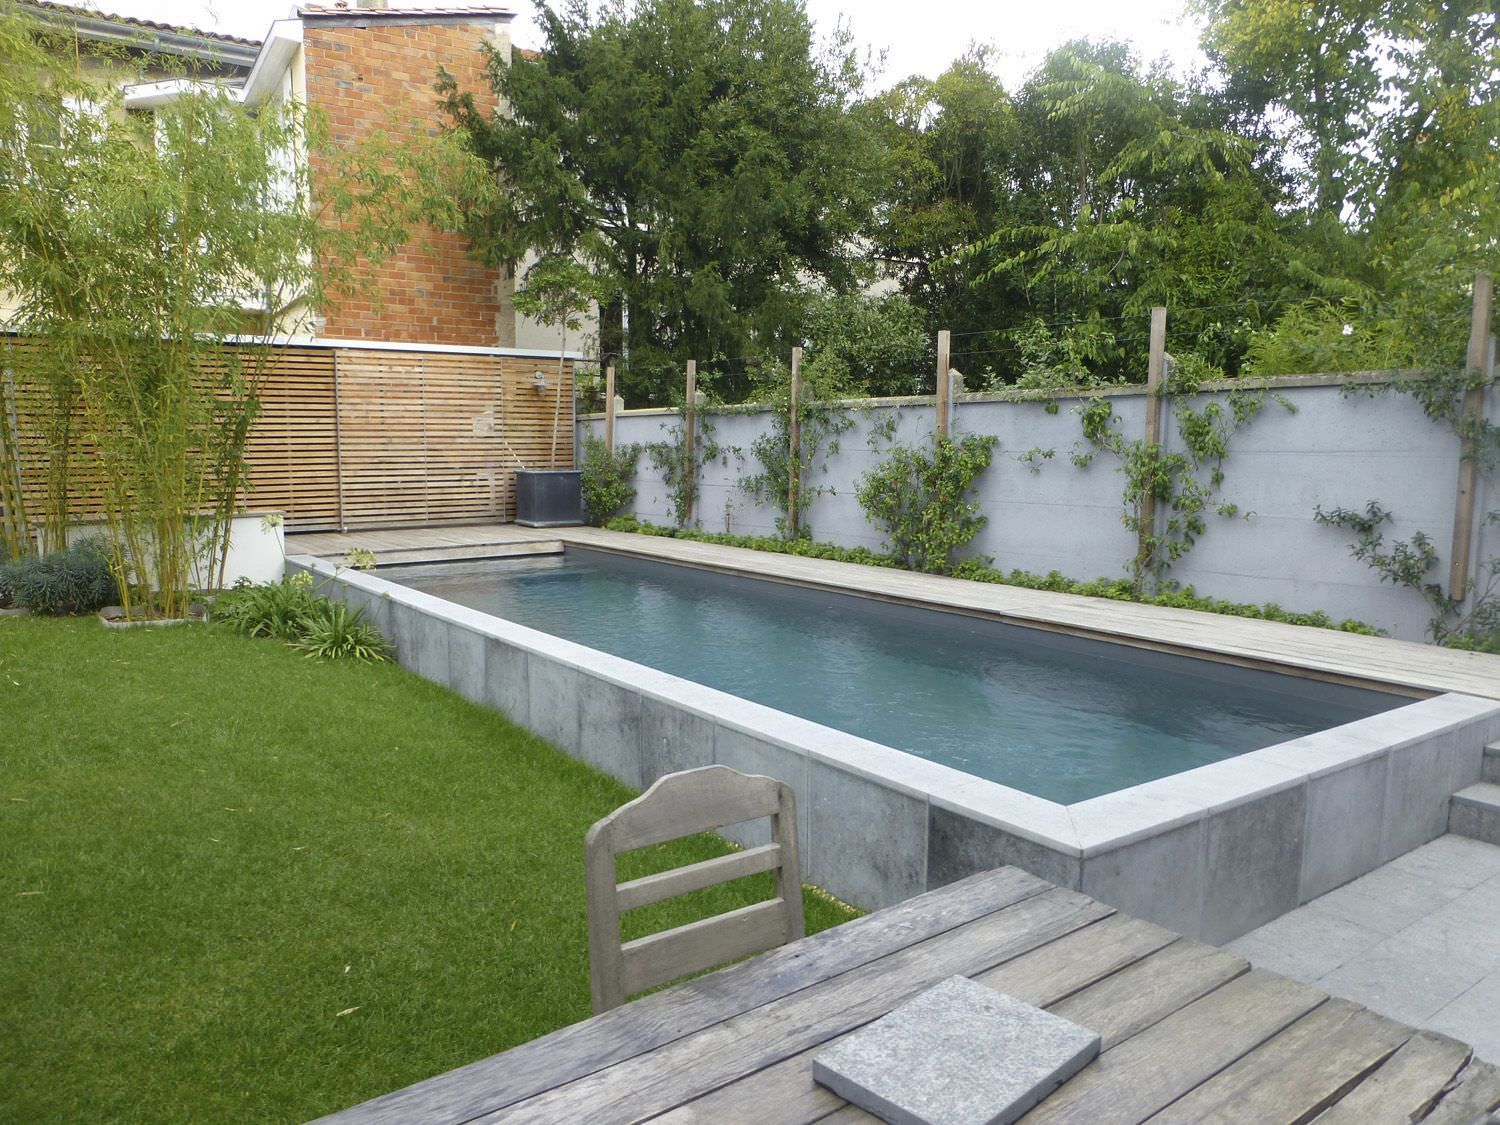 Piscine semi enterr e en b ton plouf pinterest for Piscine semi enterre